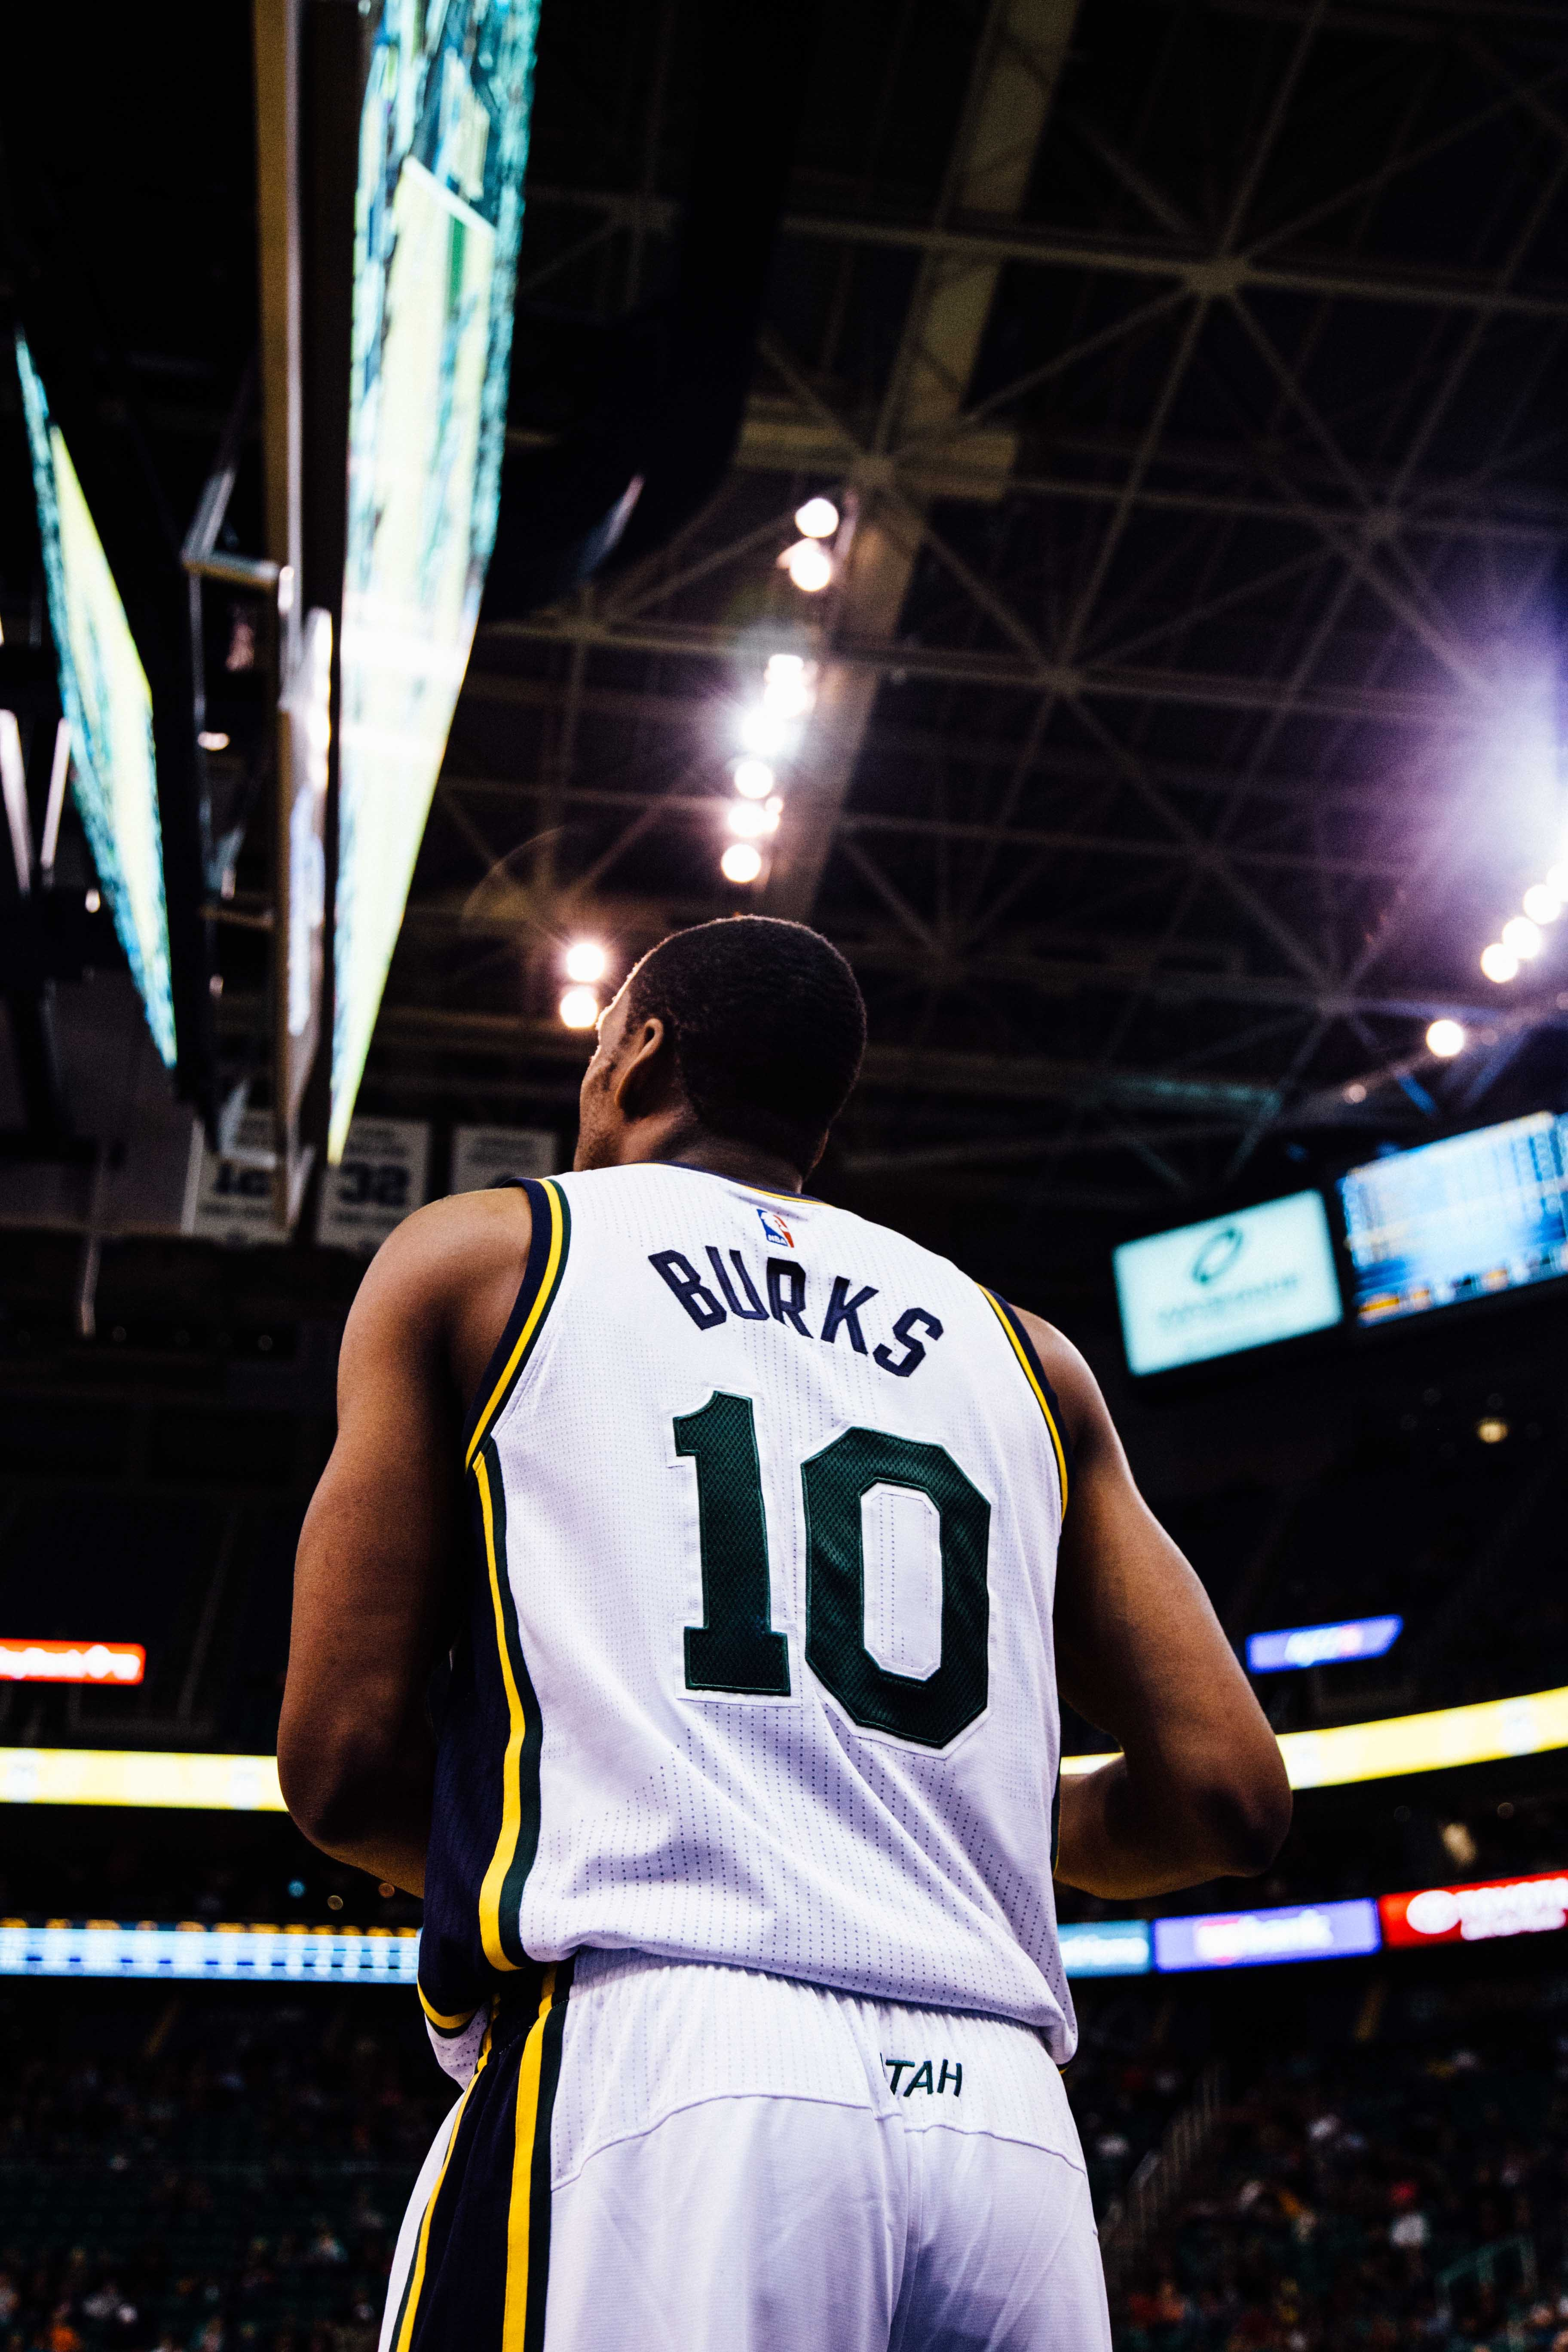 Alec Burks, professional basketball player for the Utah Jazz in the NBA